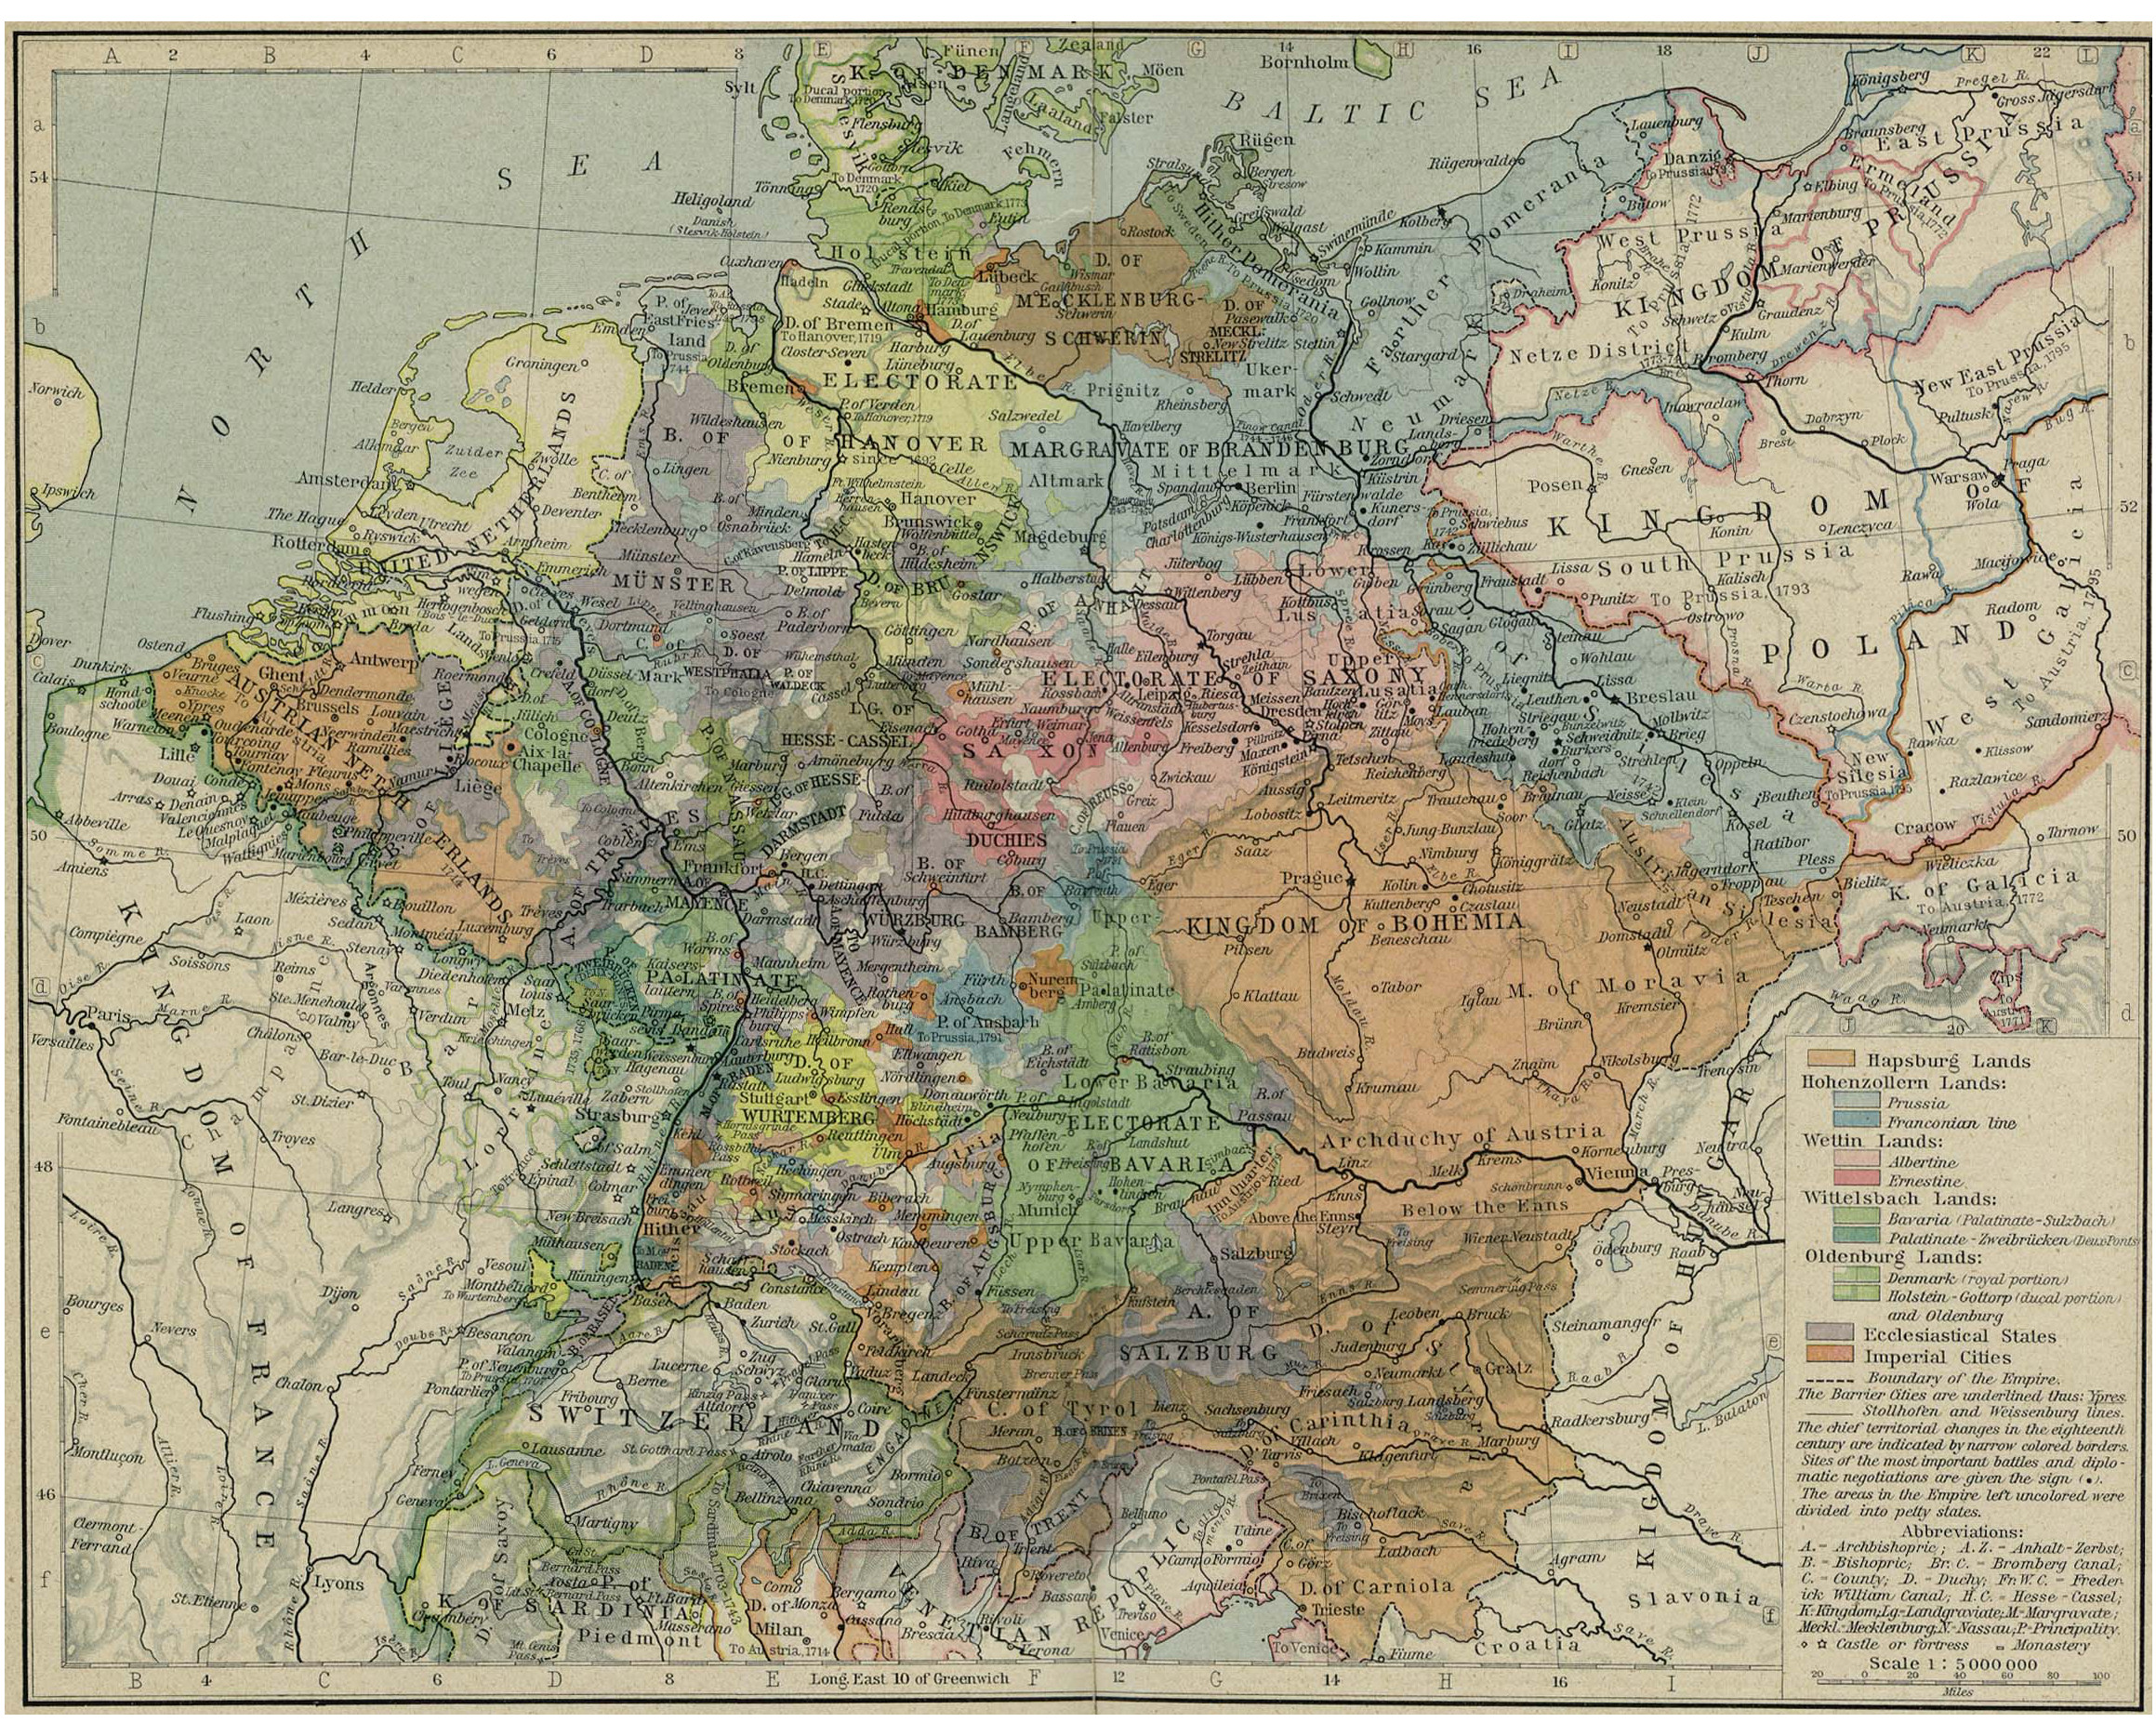 """Map of """"Europe 1786"""", from the """"Historical Atlas"""" by William R. Shepherd, 1926, courtesy of the Perry-Castañeda Library Map Collection, University of Texas Libraries. Accompanying the FROM HUMBLE ORIGINS webpage Loci."""